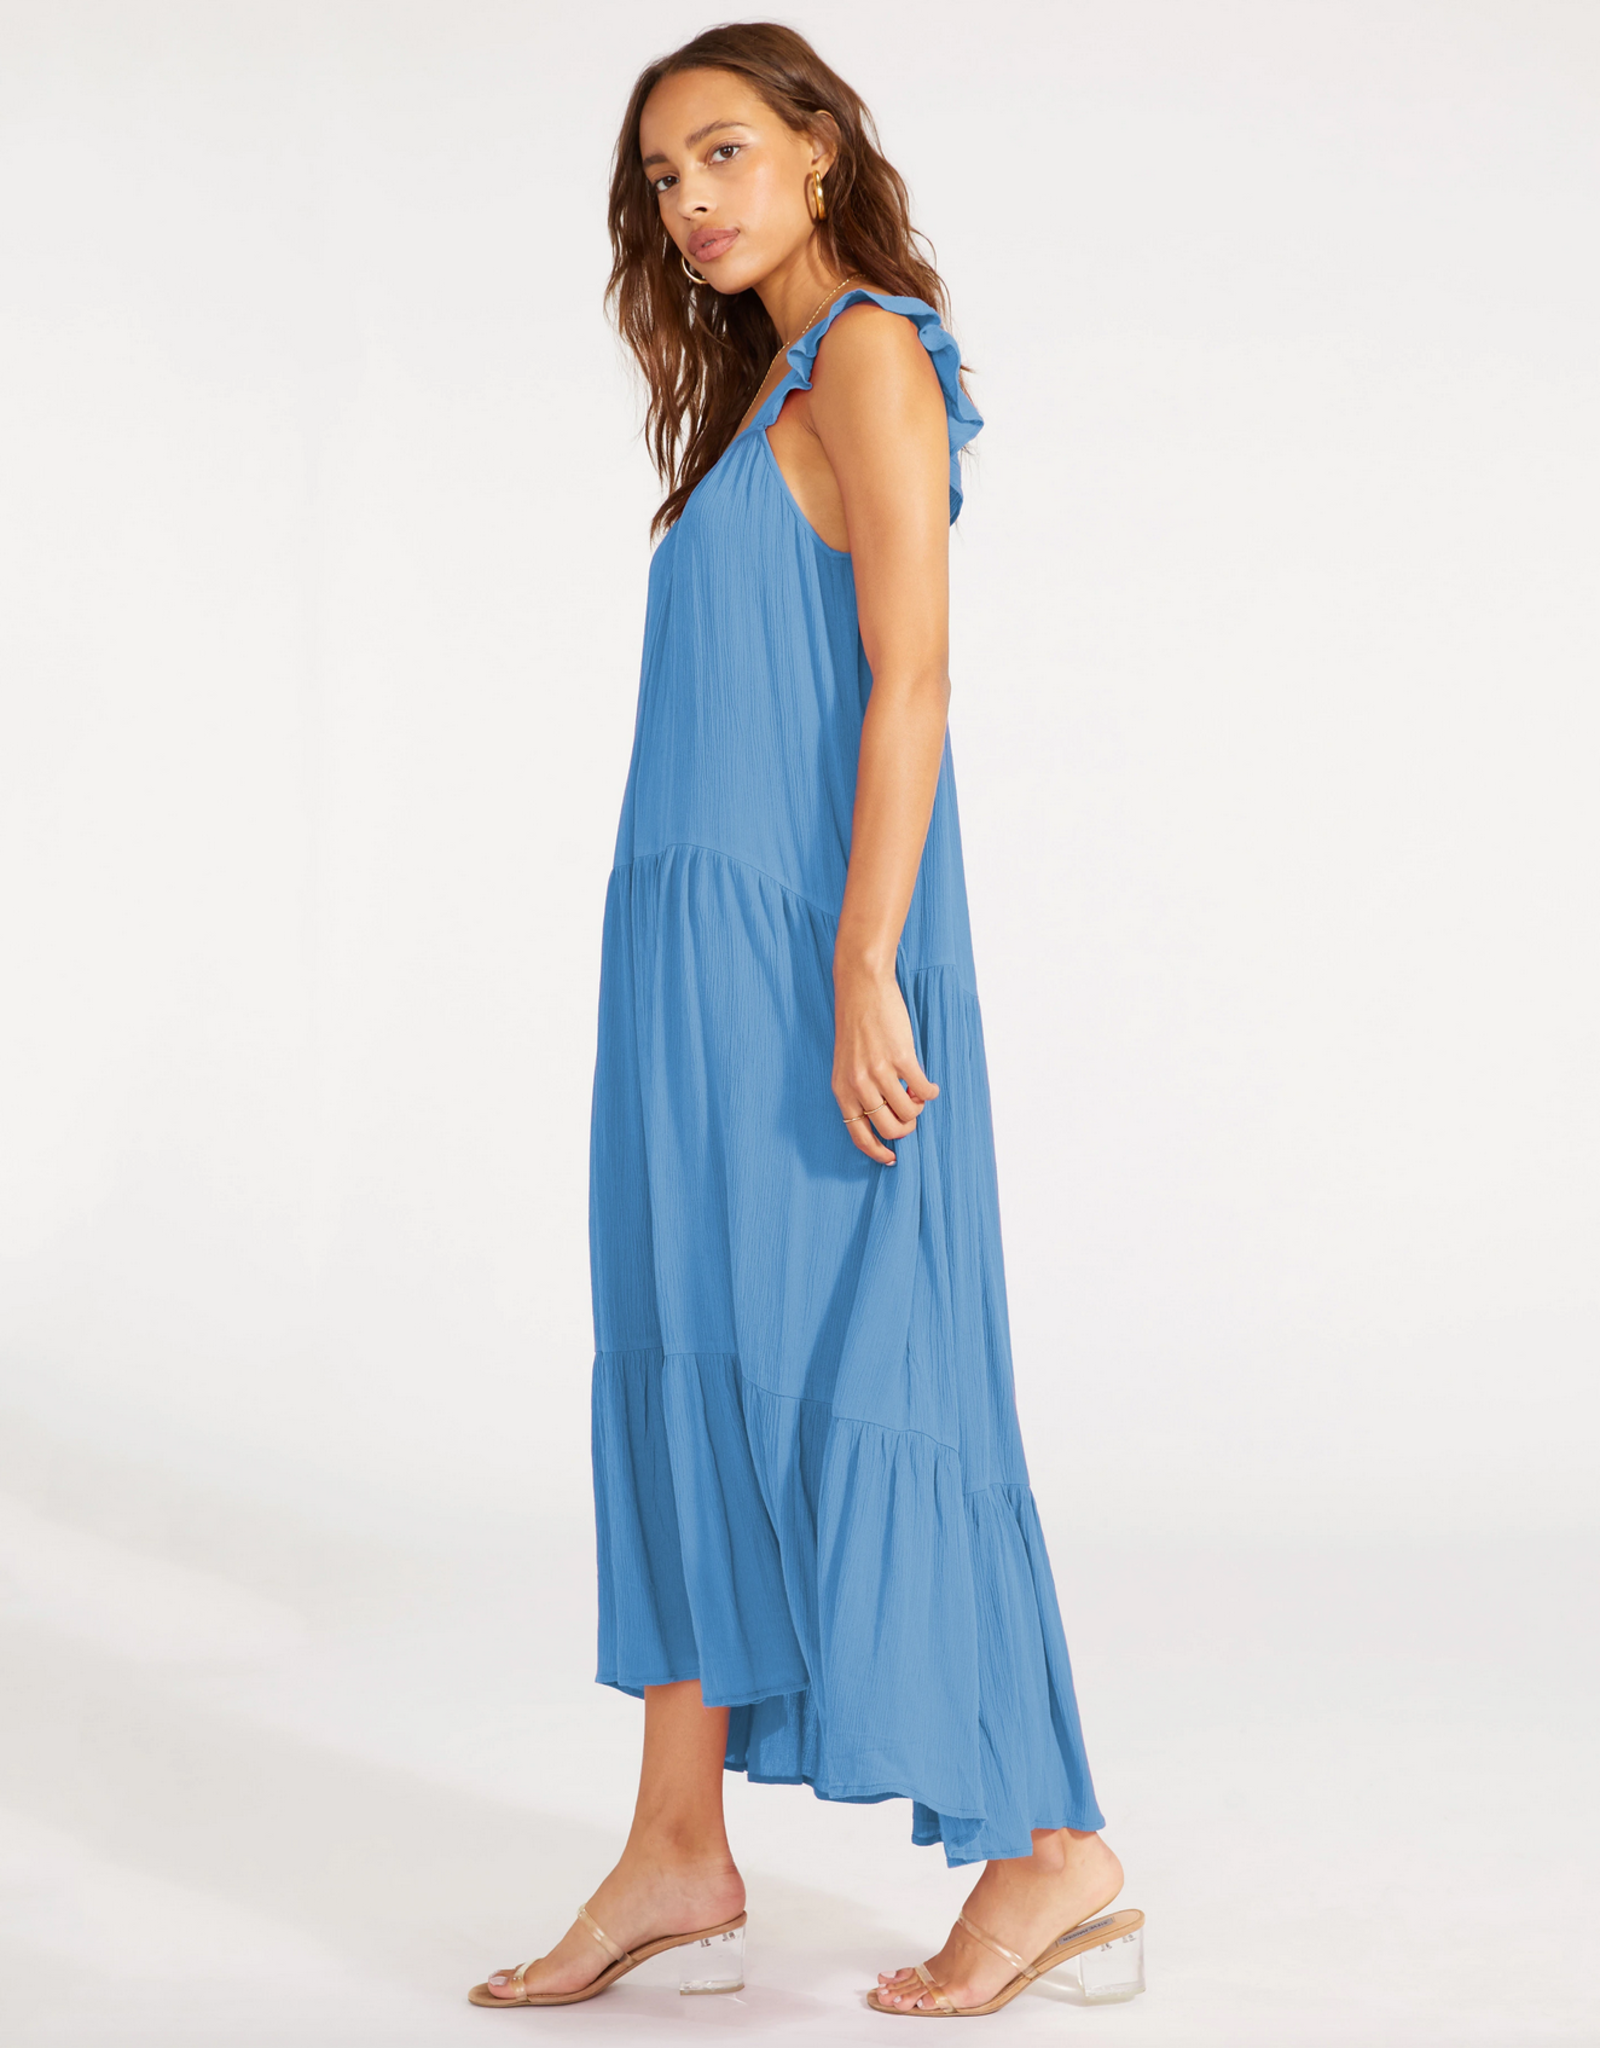 BB Dakota Under The Sun Maxi Dress